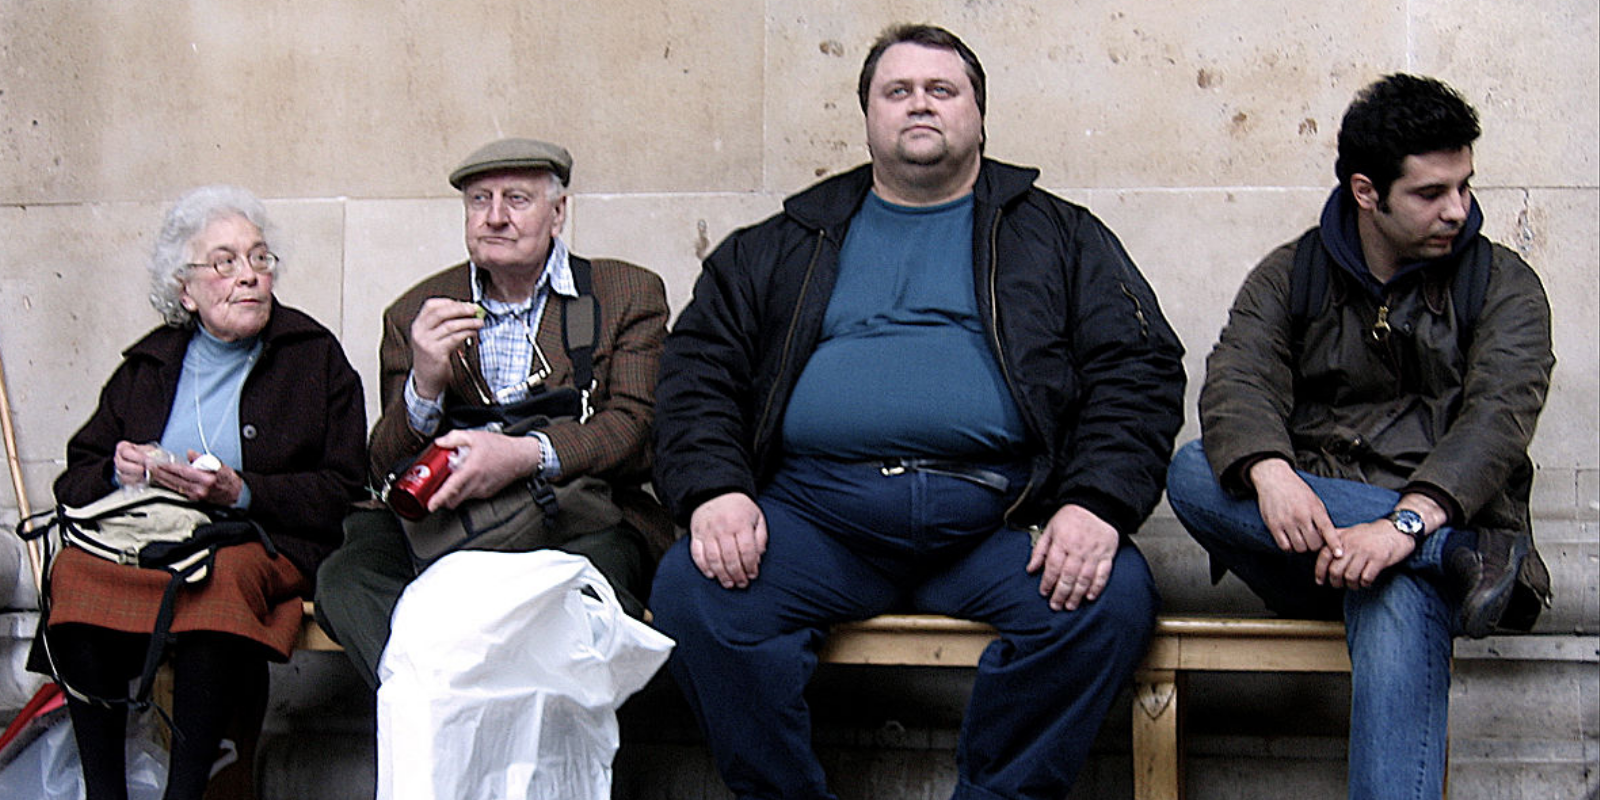 Nearly 90 percent of COVID deaths are in countries with high levels of obesity, says new study